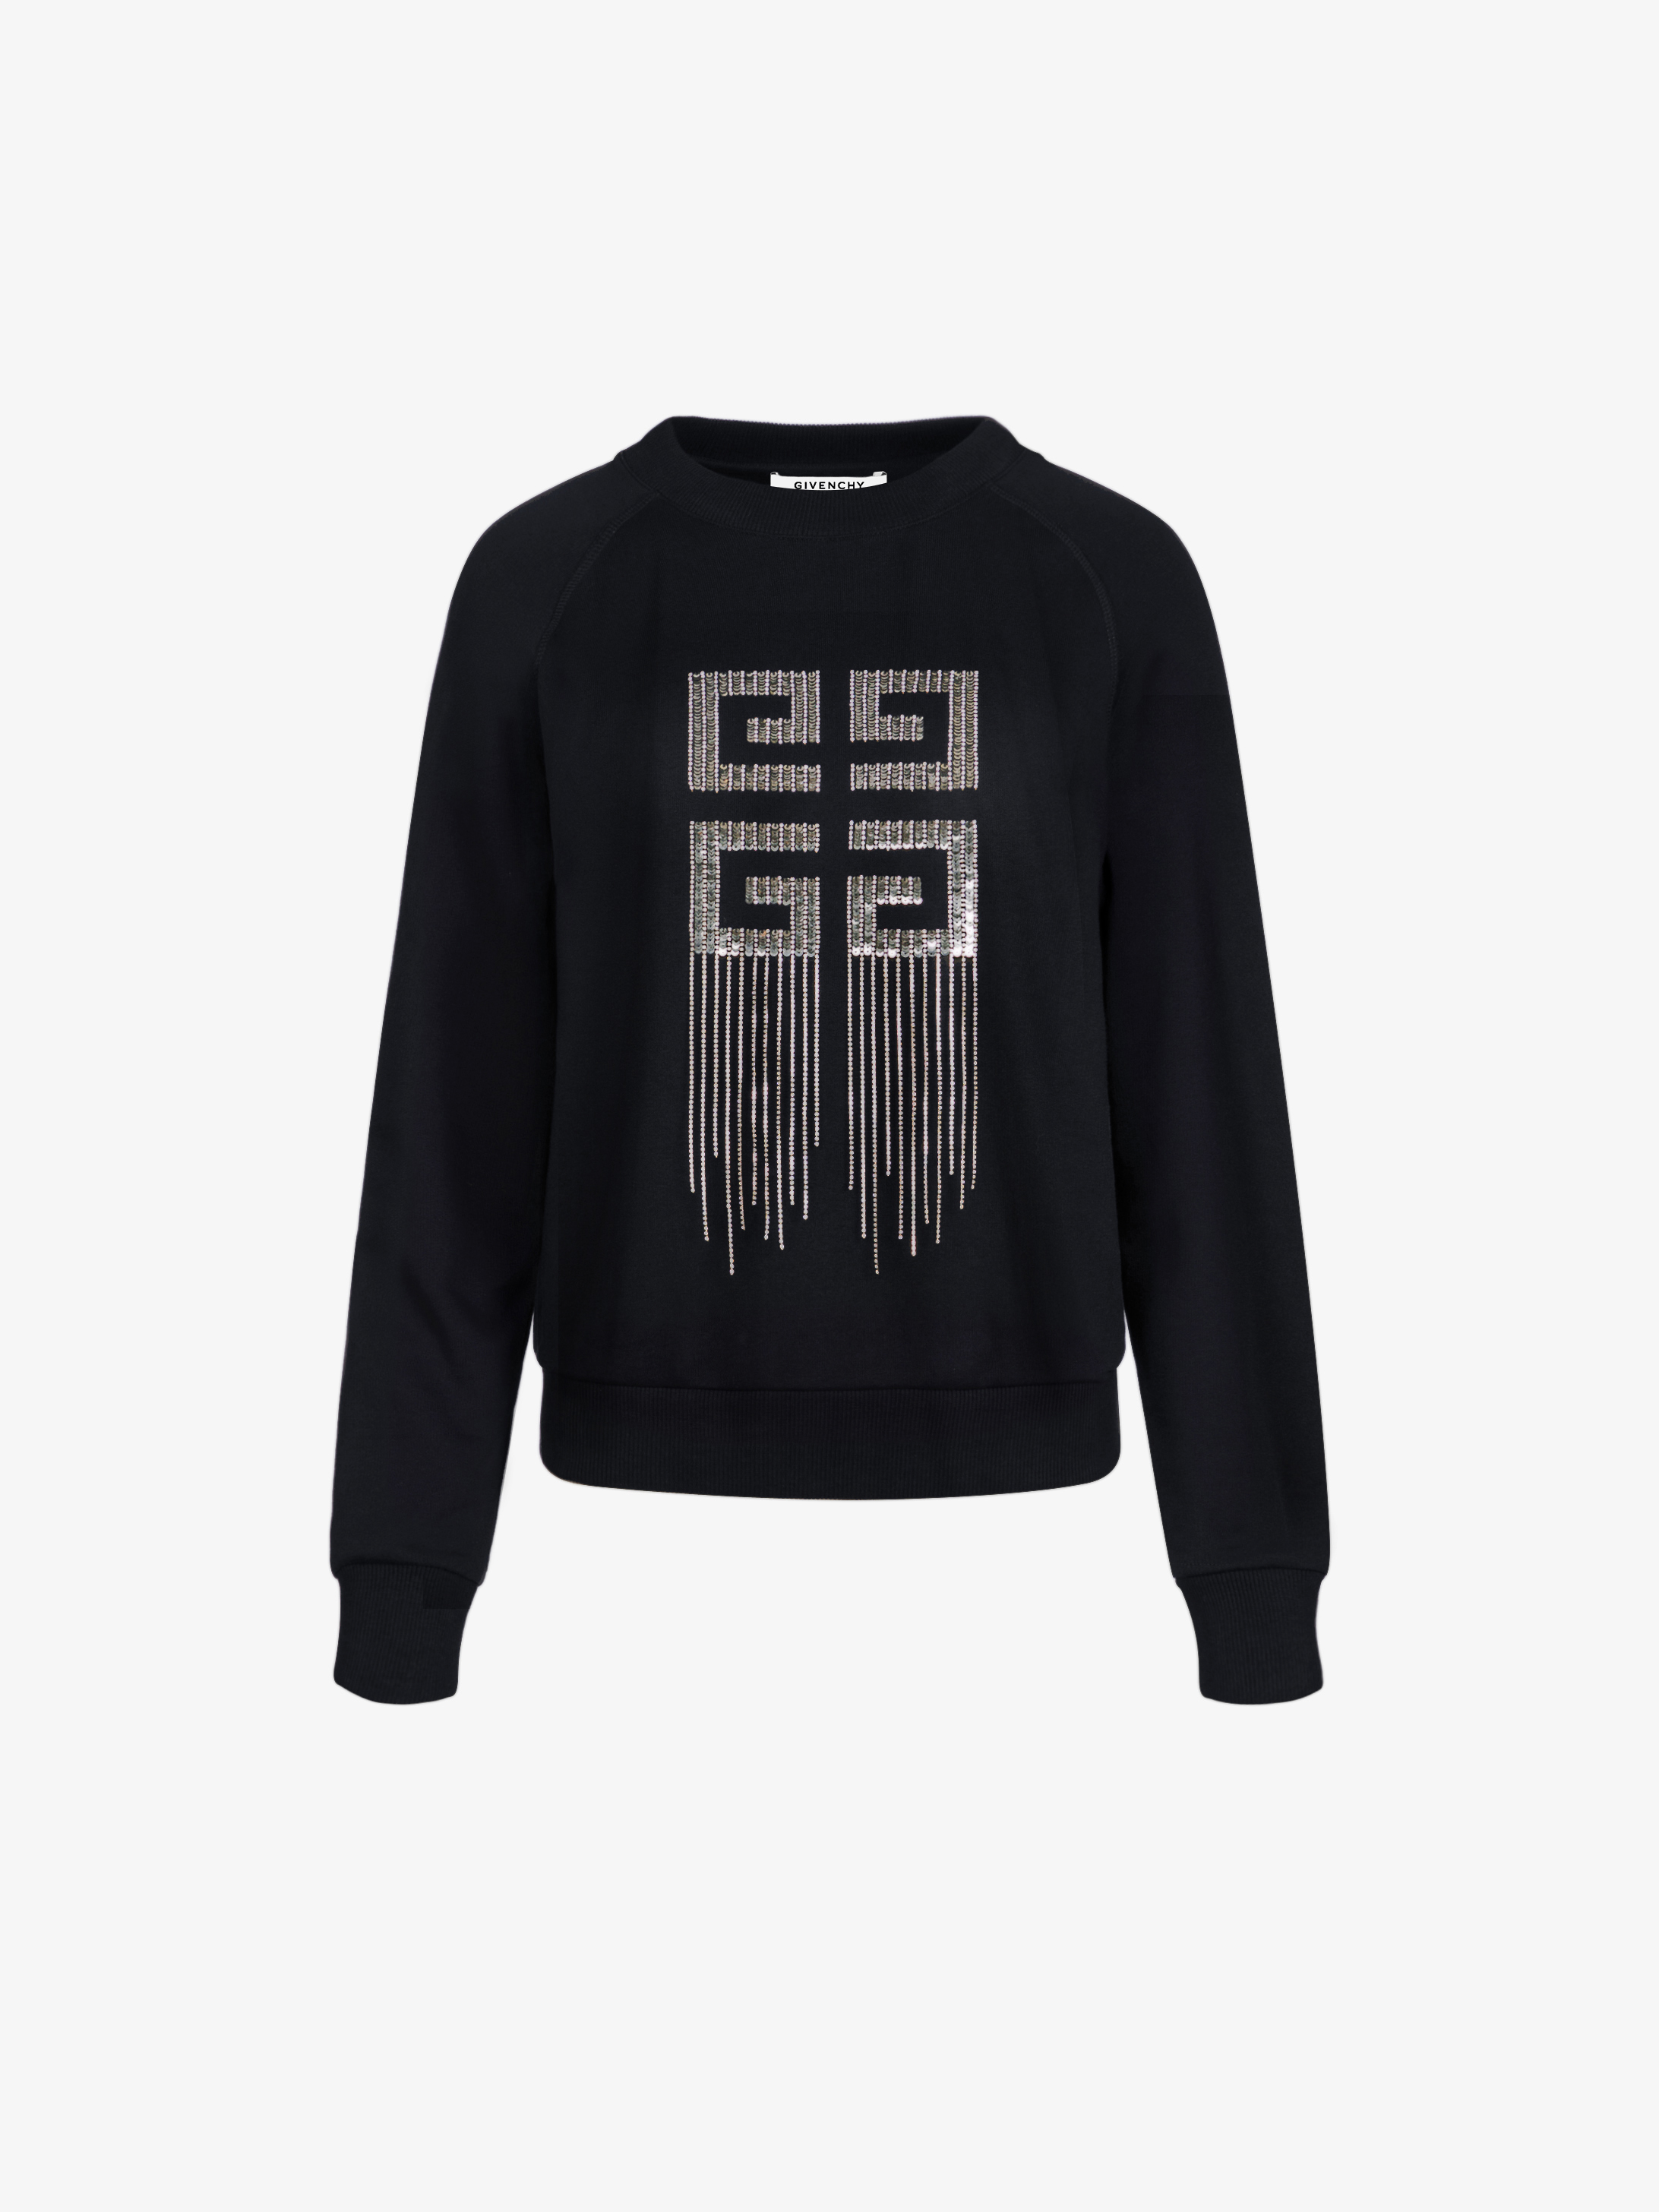 4G embroidery sweatshirt in sequins and crystals